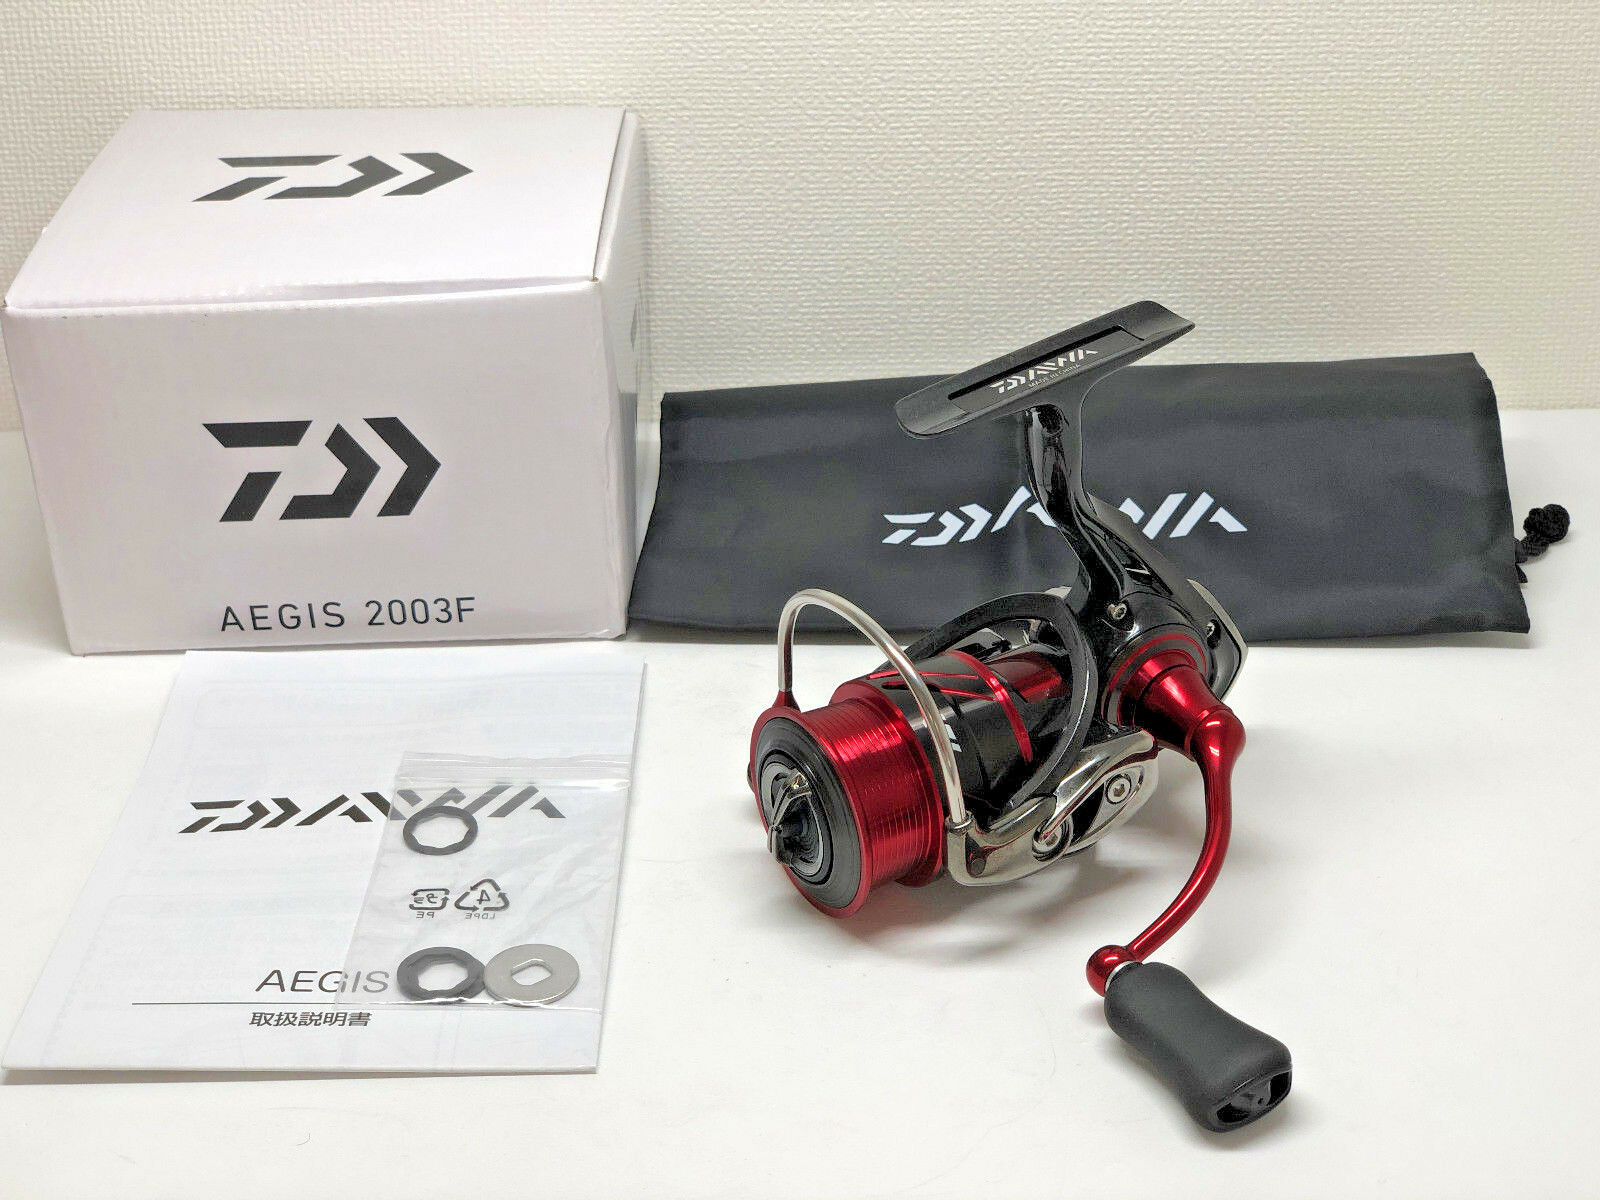 DAIWA 17 AEGIS 2003F  from Japan